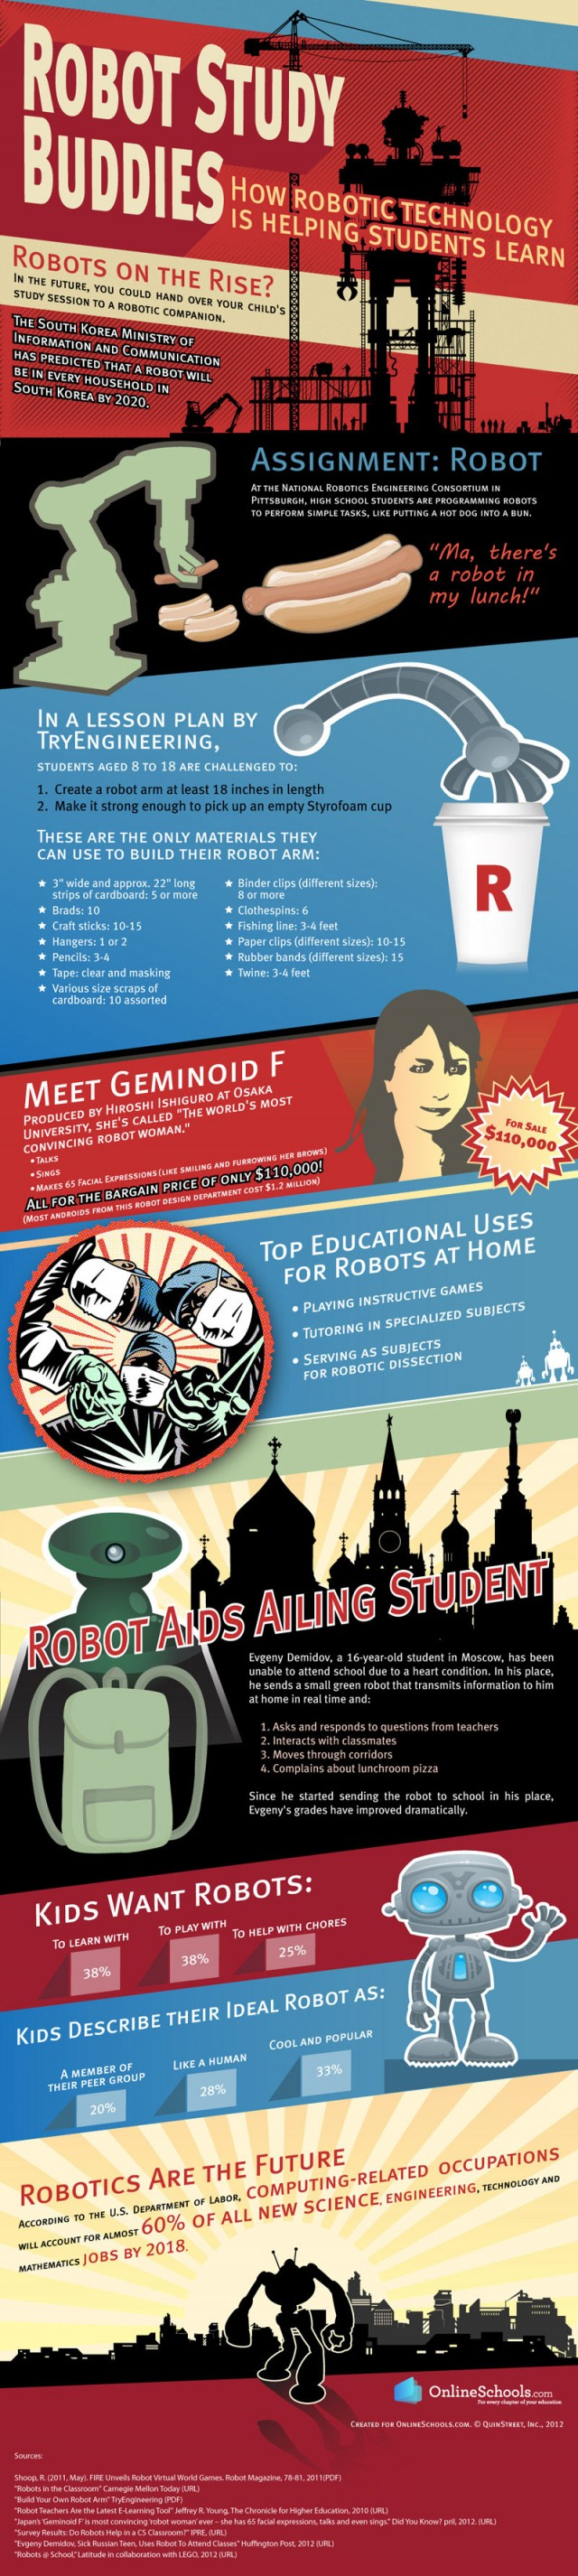 robots as study buddy for children